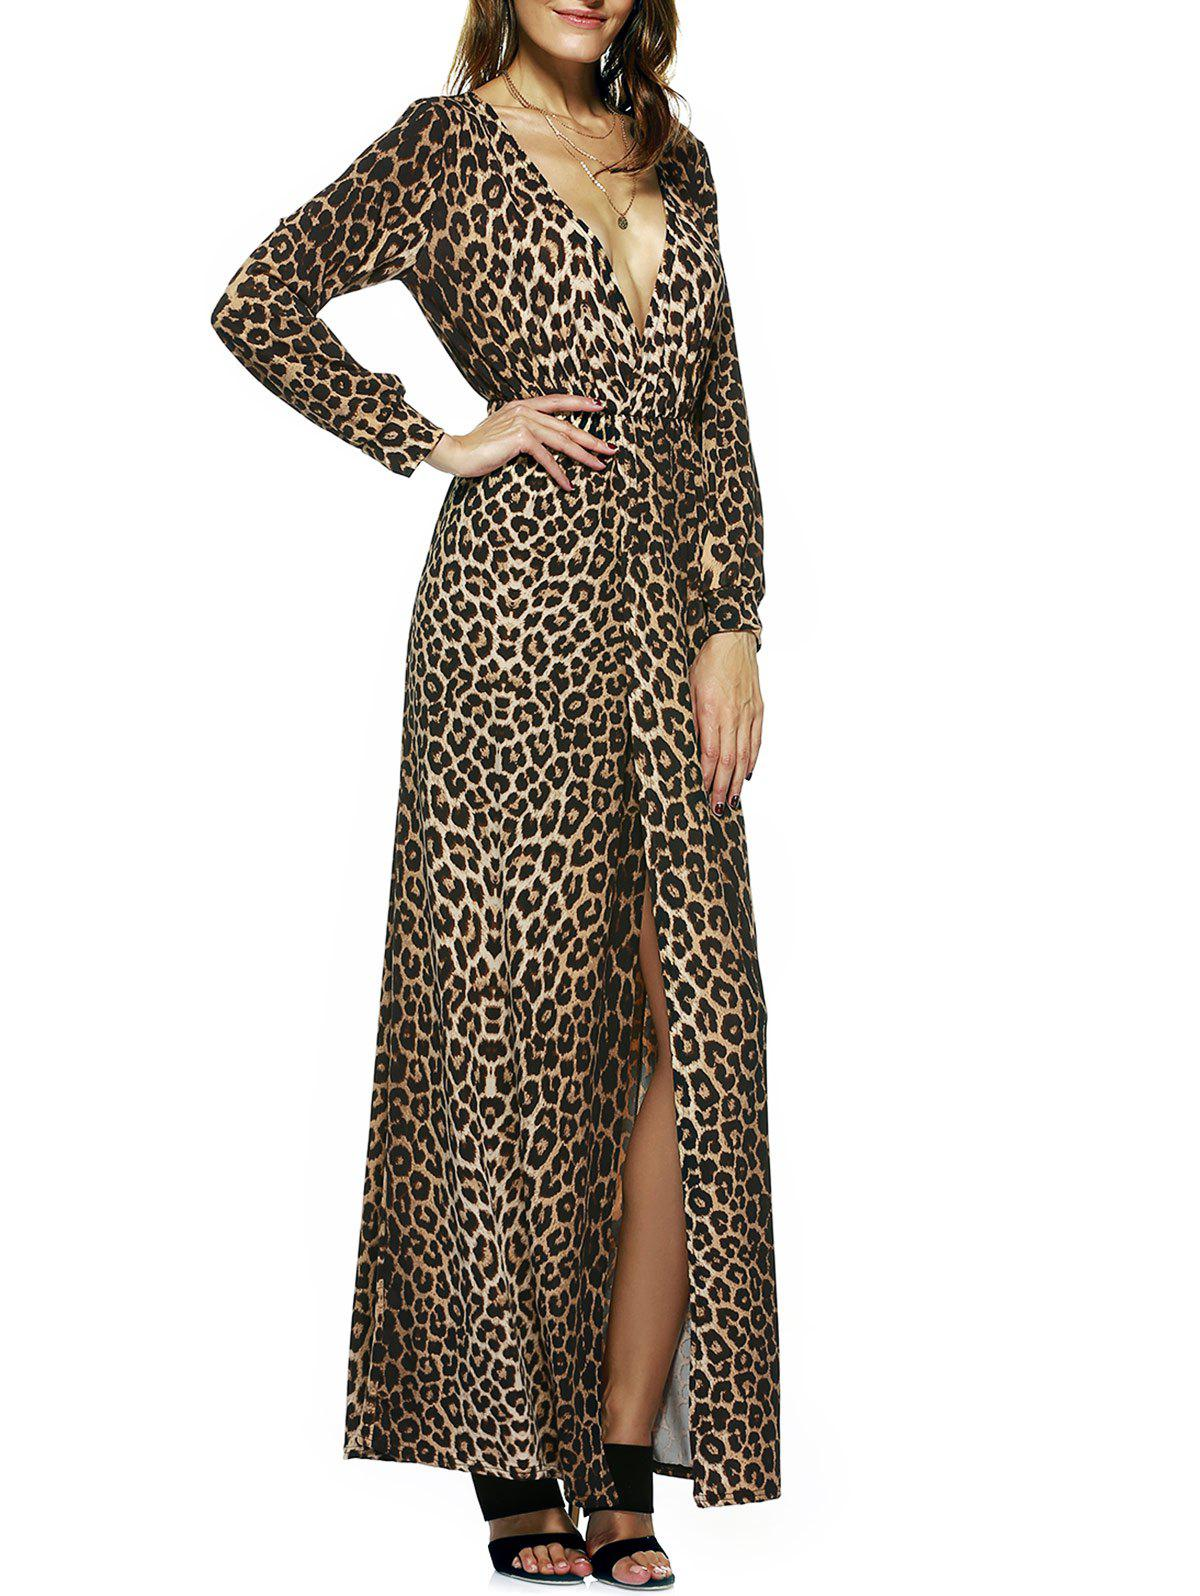 Leopard Print High Slit Maxi Dress - LEOPARD XL